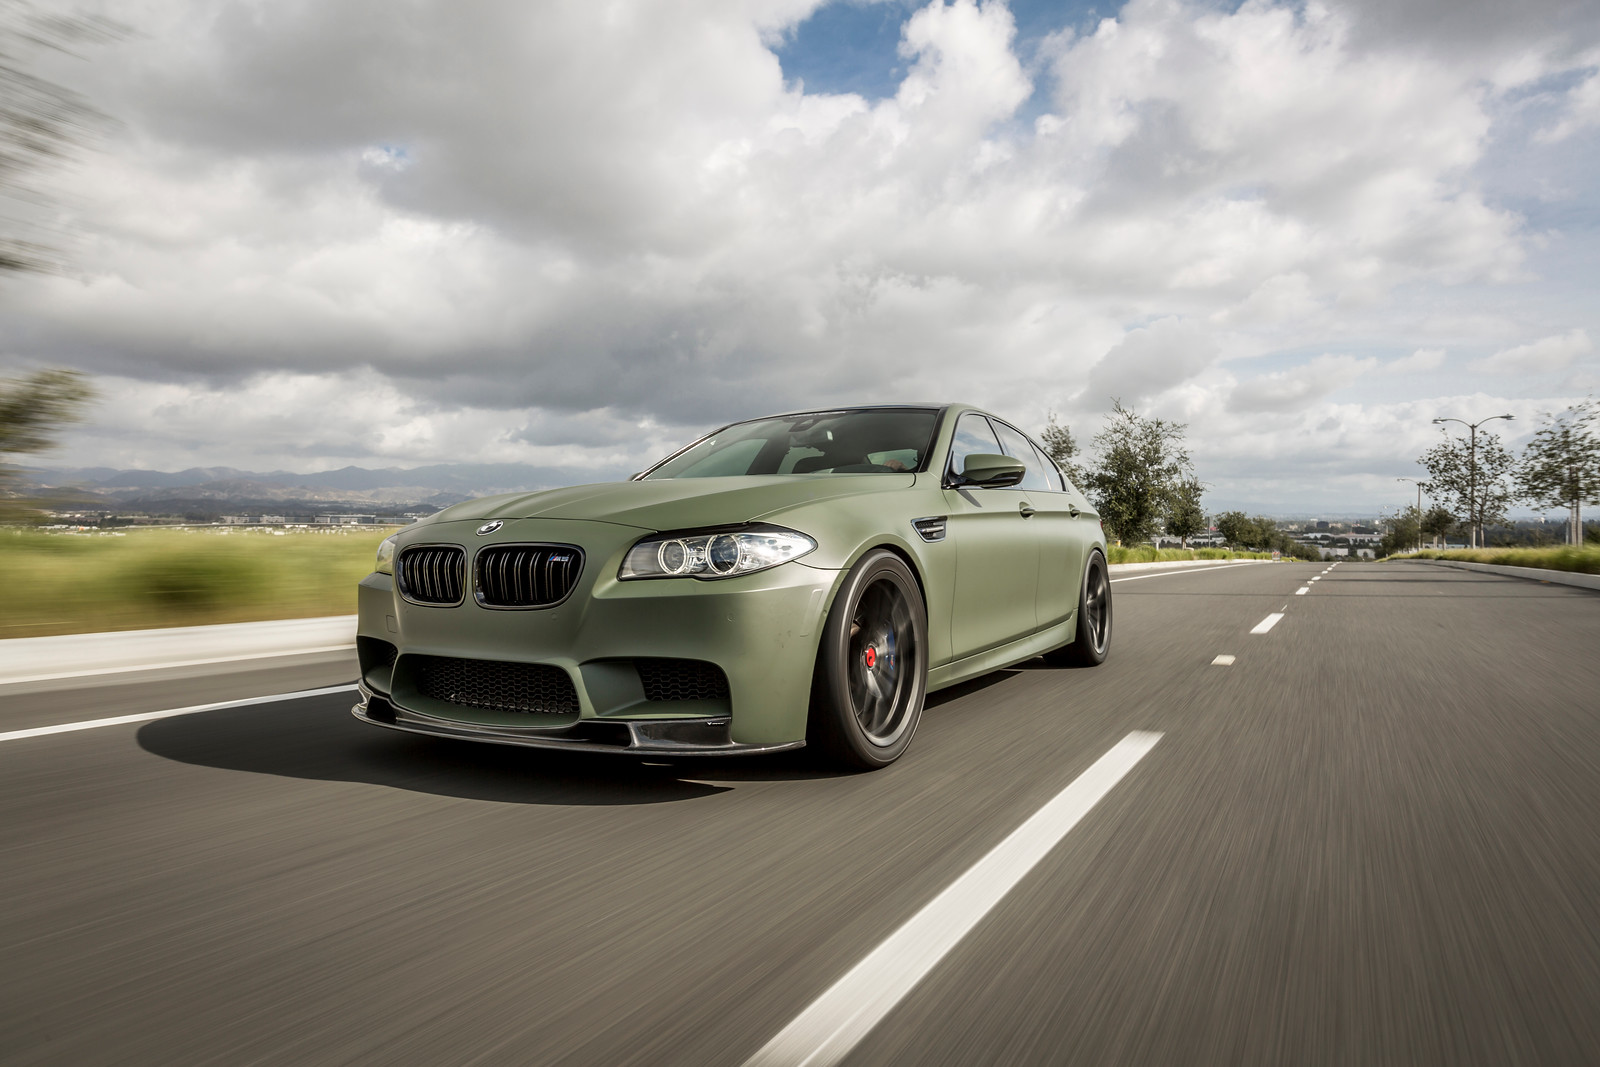 BMW M5 F10 Military Green by Vorsteiner